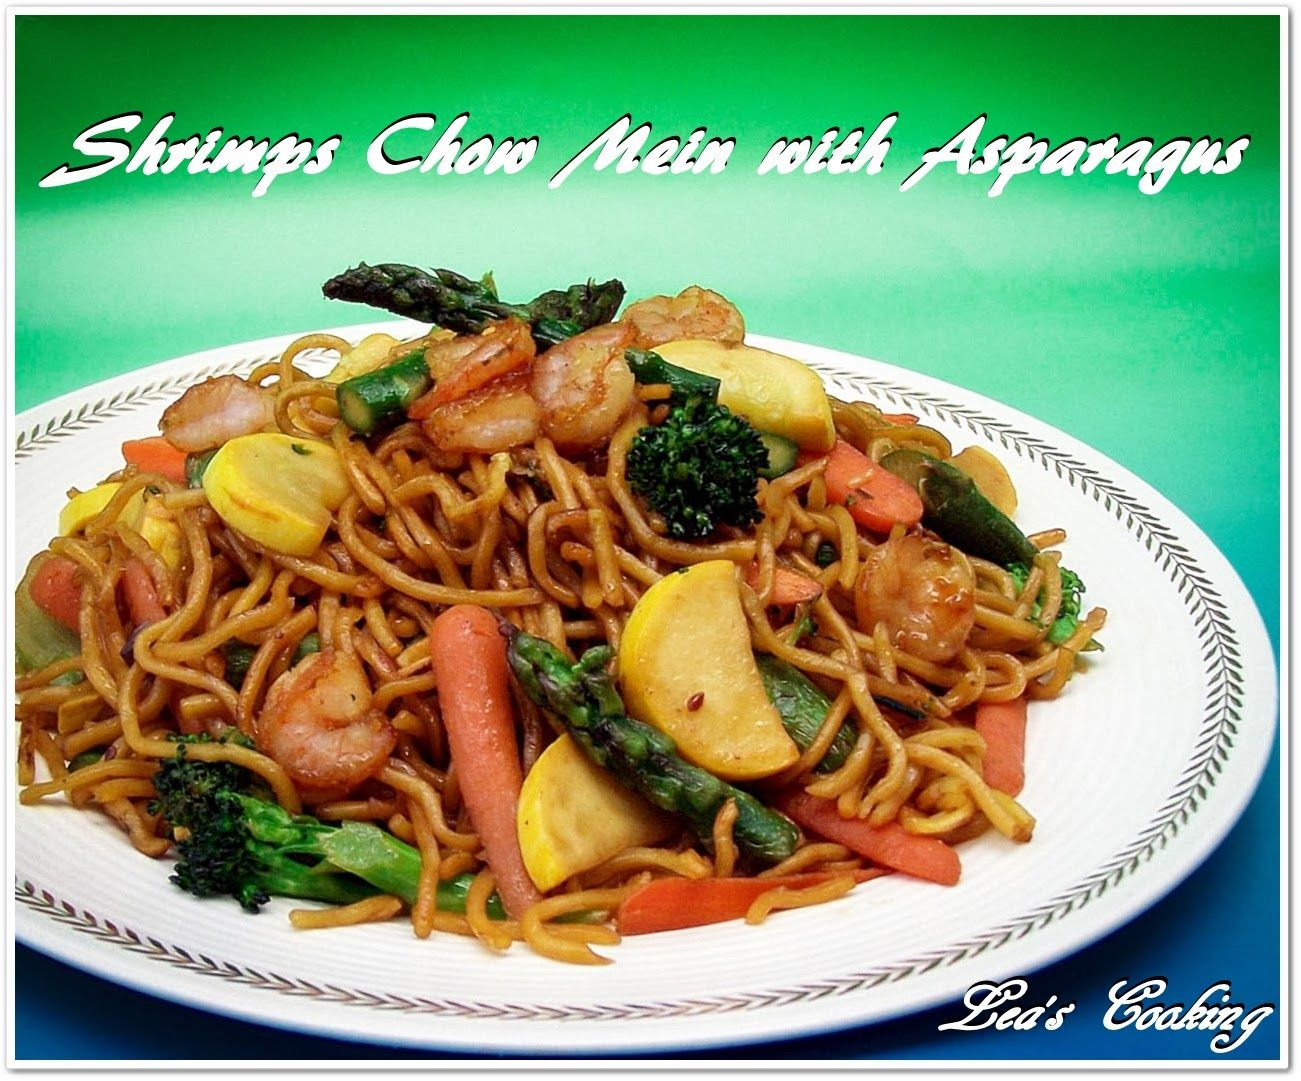 lea's cooking: shrimps chow mein with asparagus | recipes